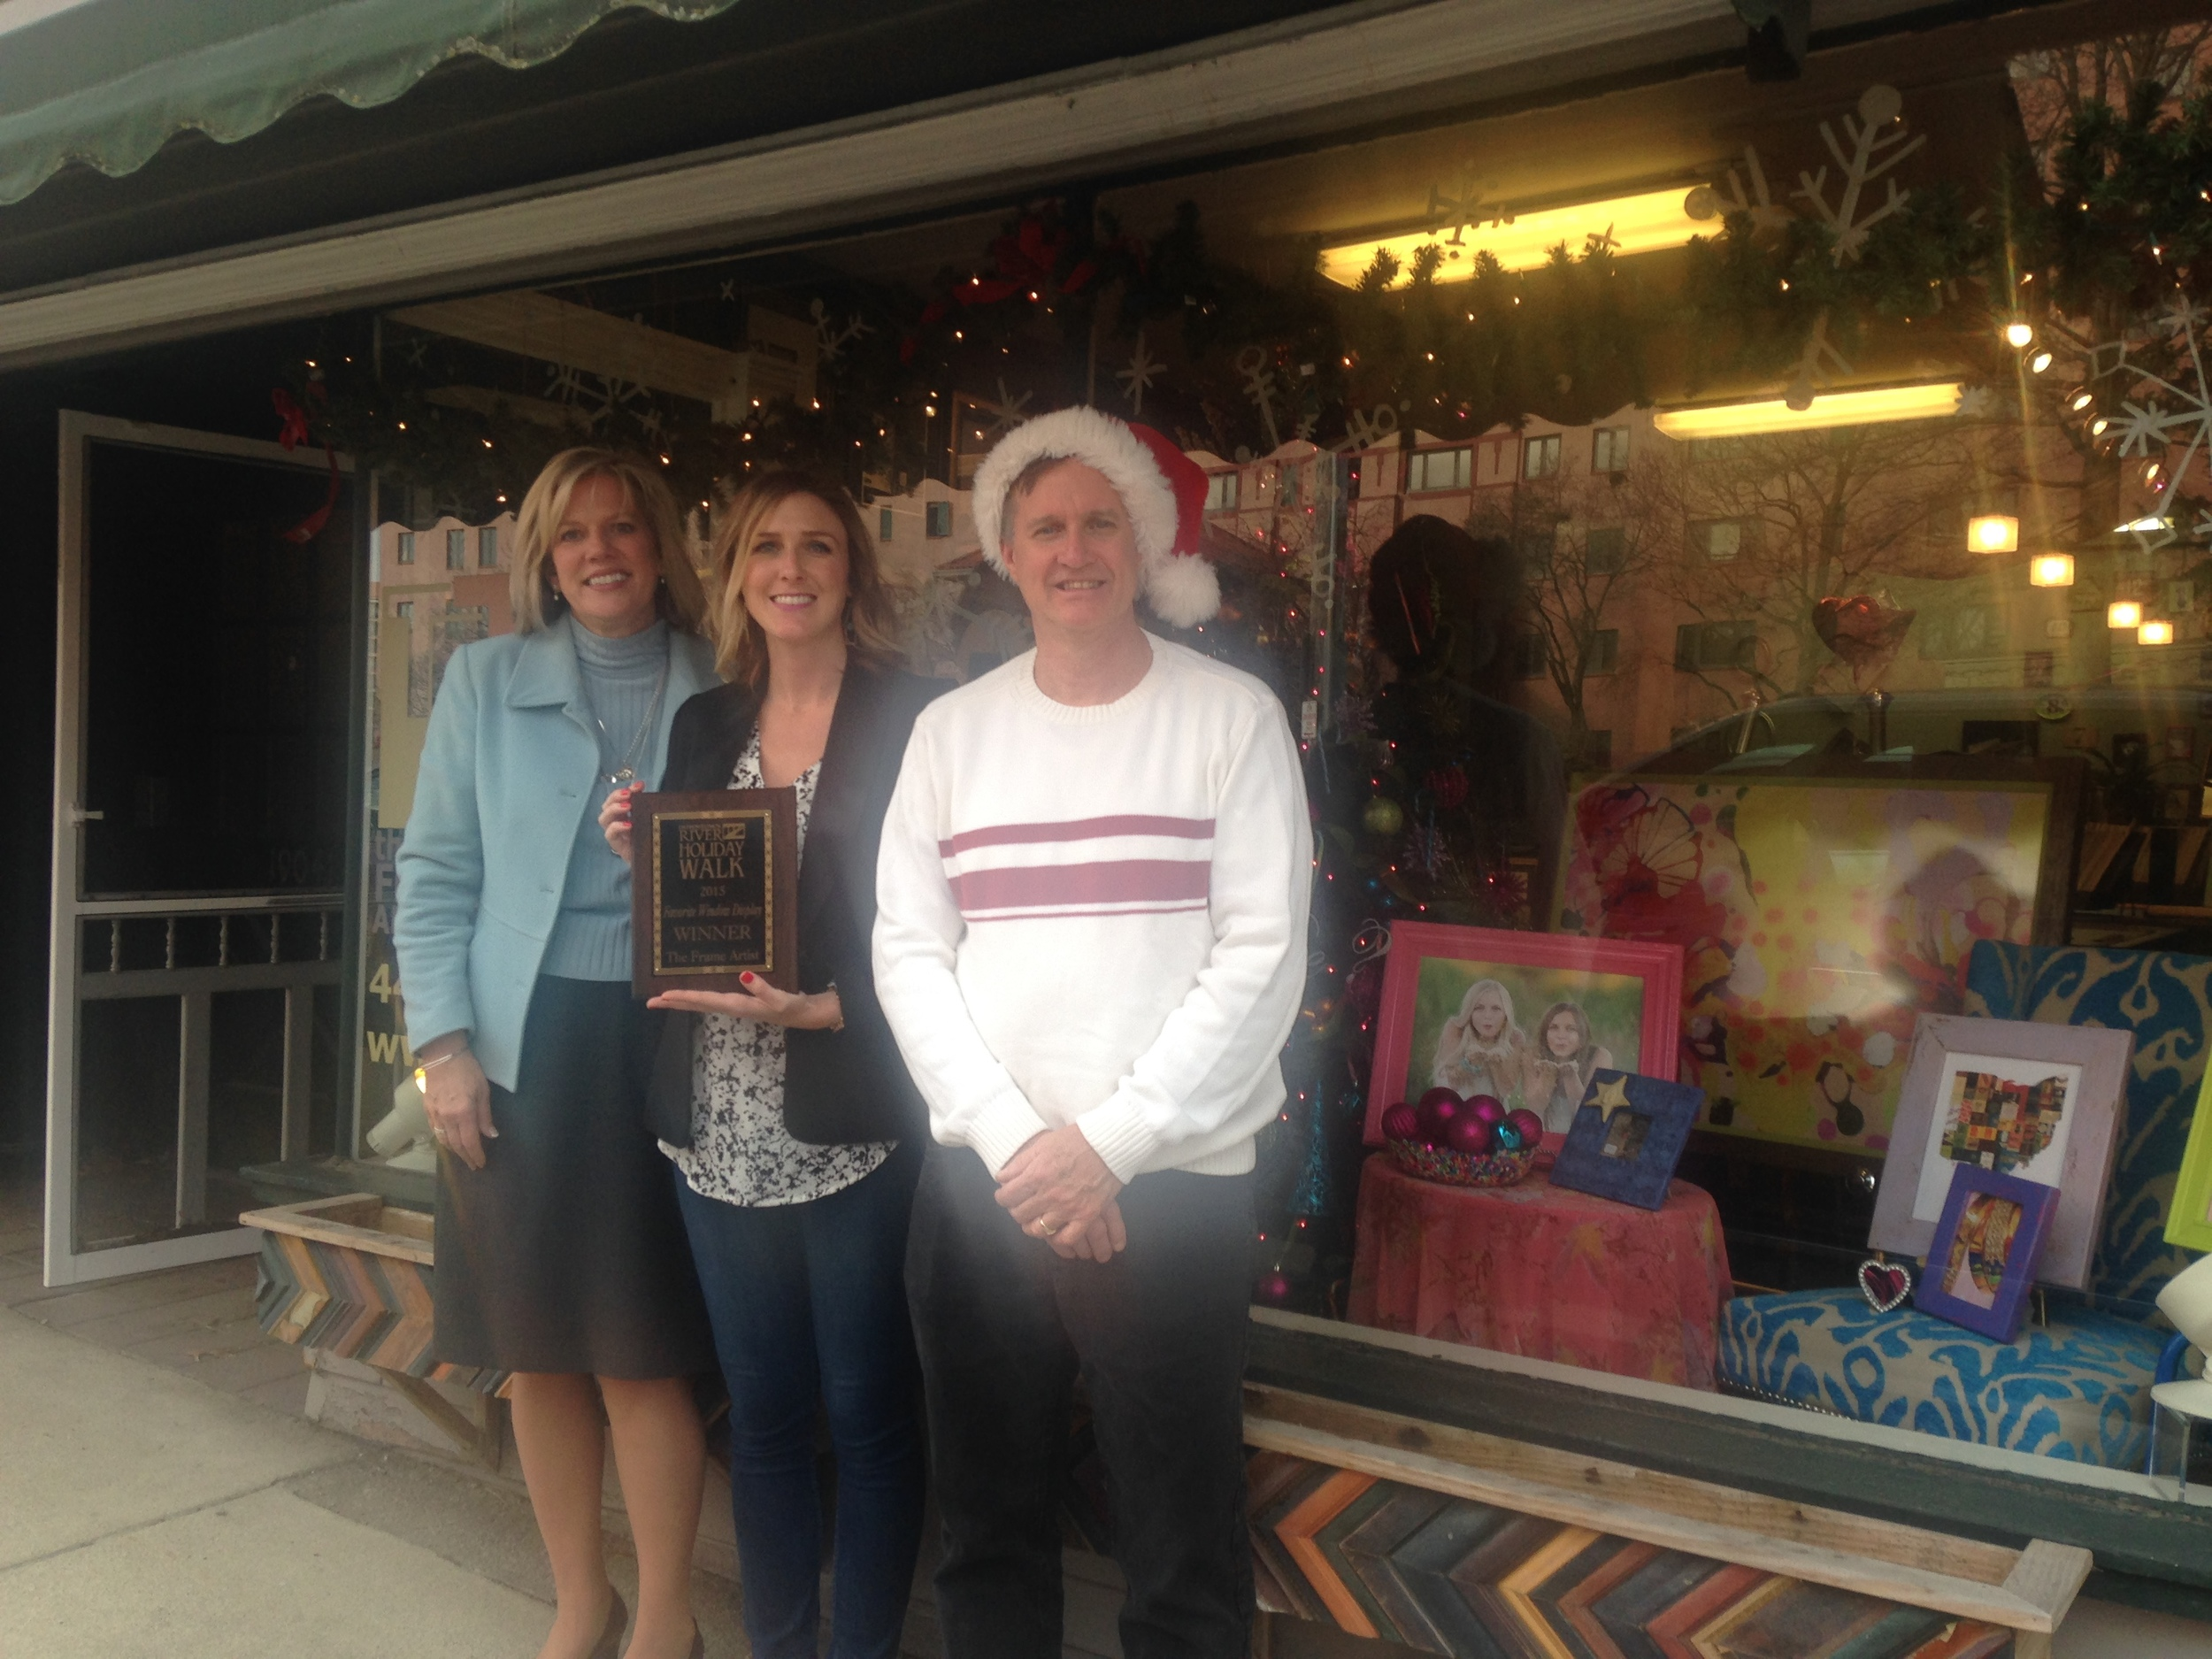 City of Rocky River Mayor Bobst, contest winner Amy Baumberger of The Frame Artist and Holiday Walk Coordinator Bill Brink